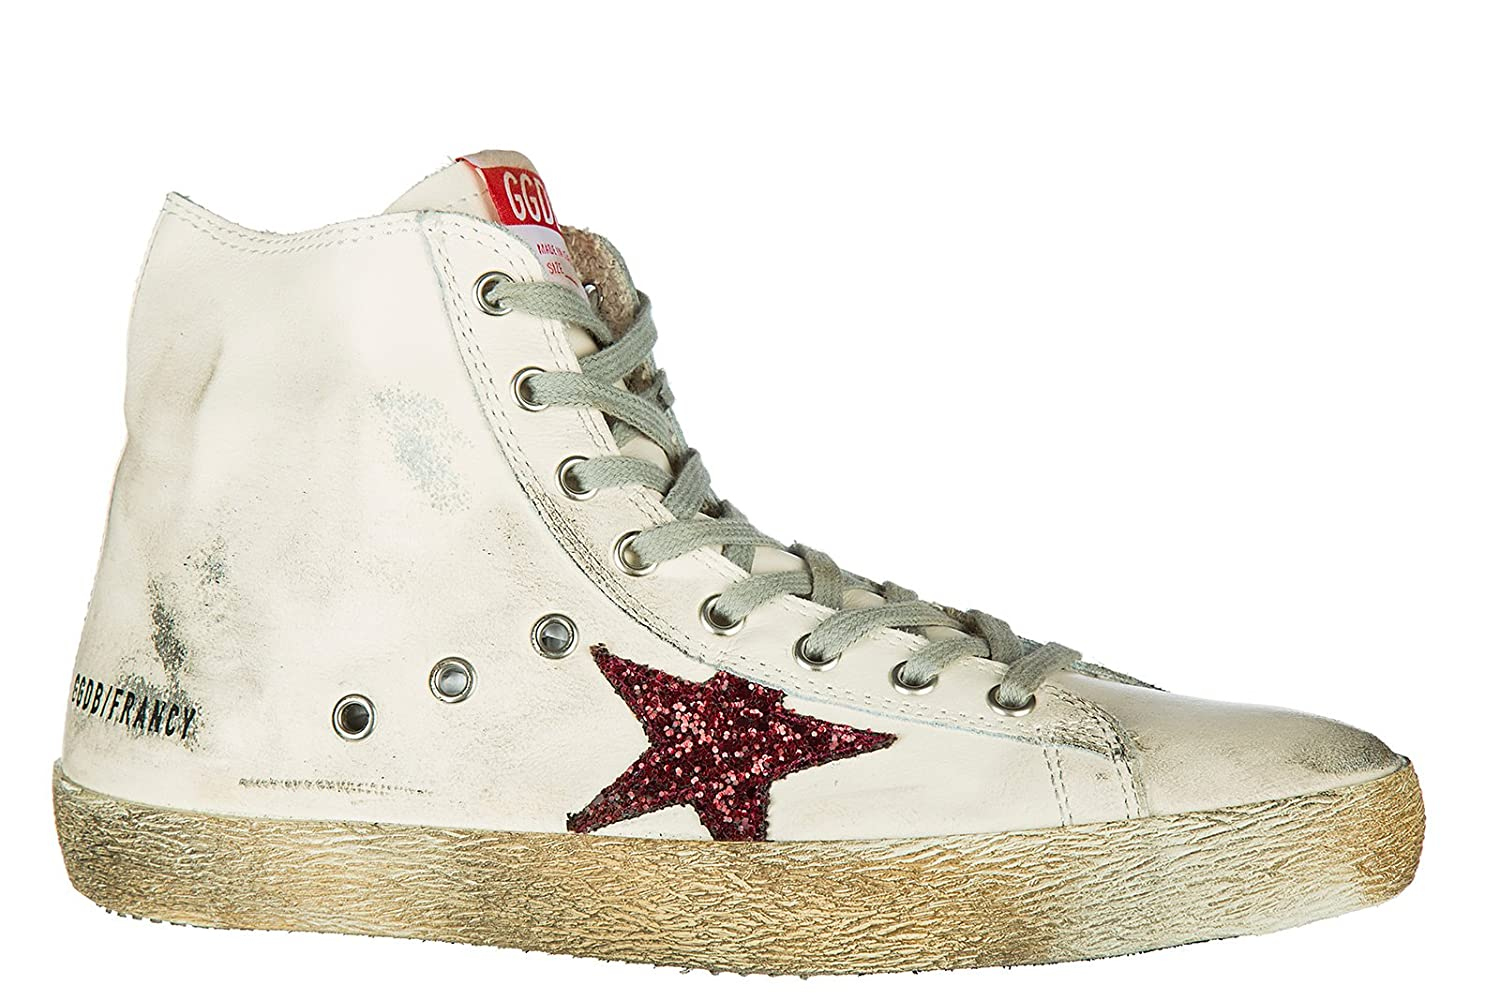 Golden Goose men's shoes high top leather trainers sneakers francy white:  Amazon.ca: Shoes & Handbags